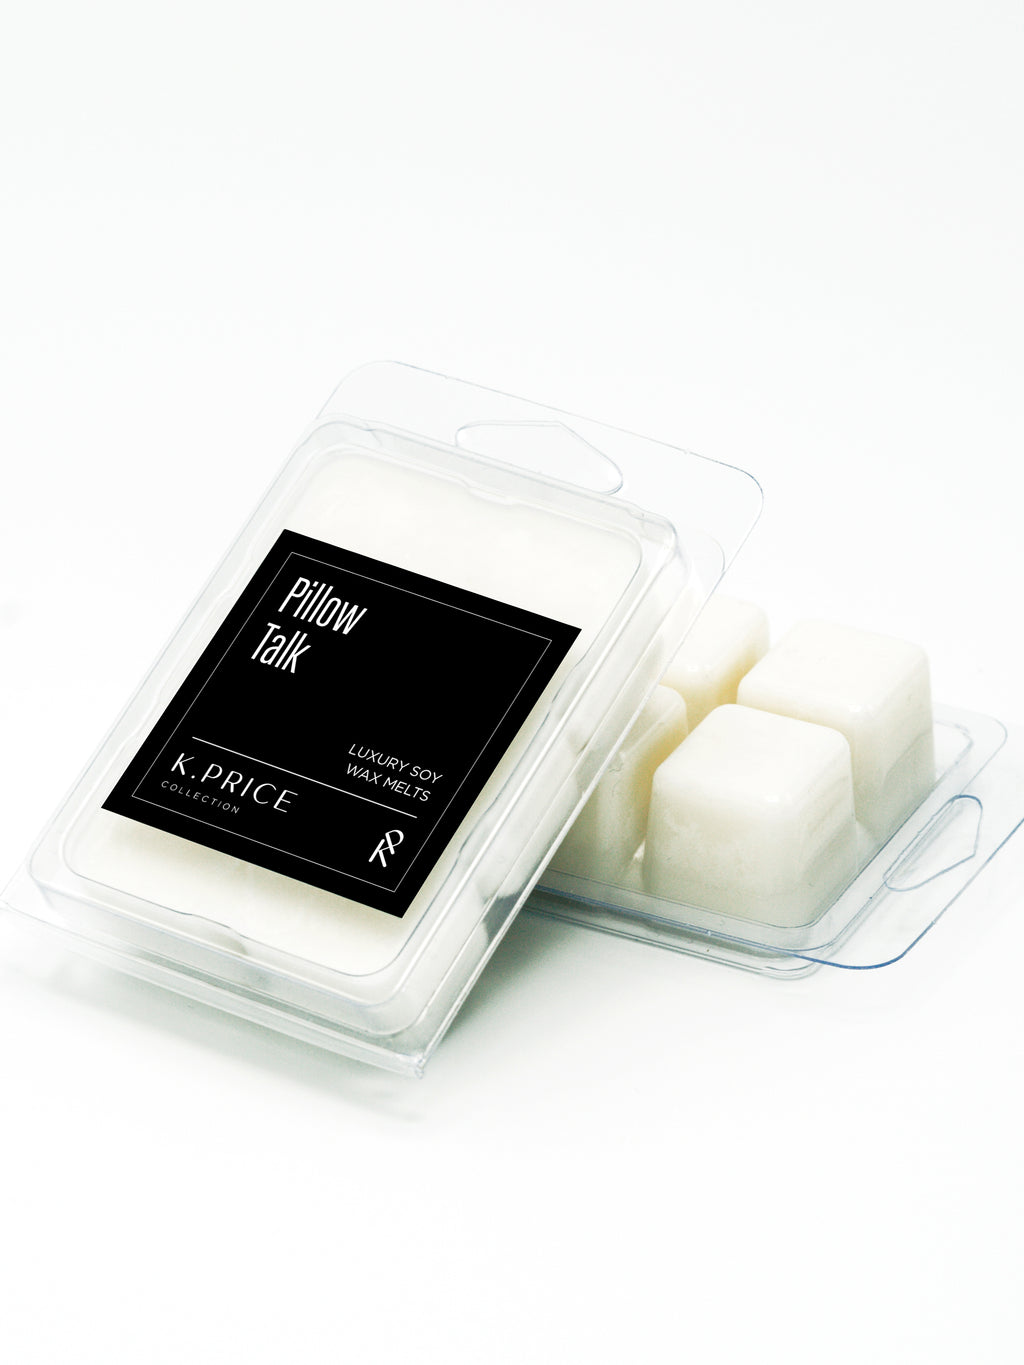 Pillow Talk - Soy Wax Melts